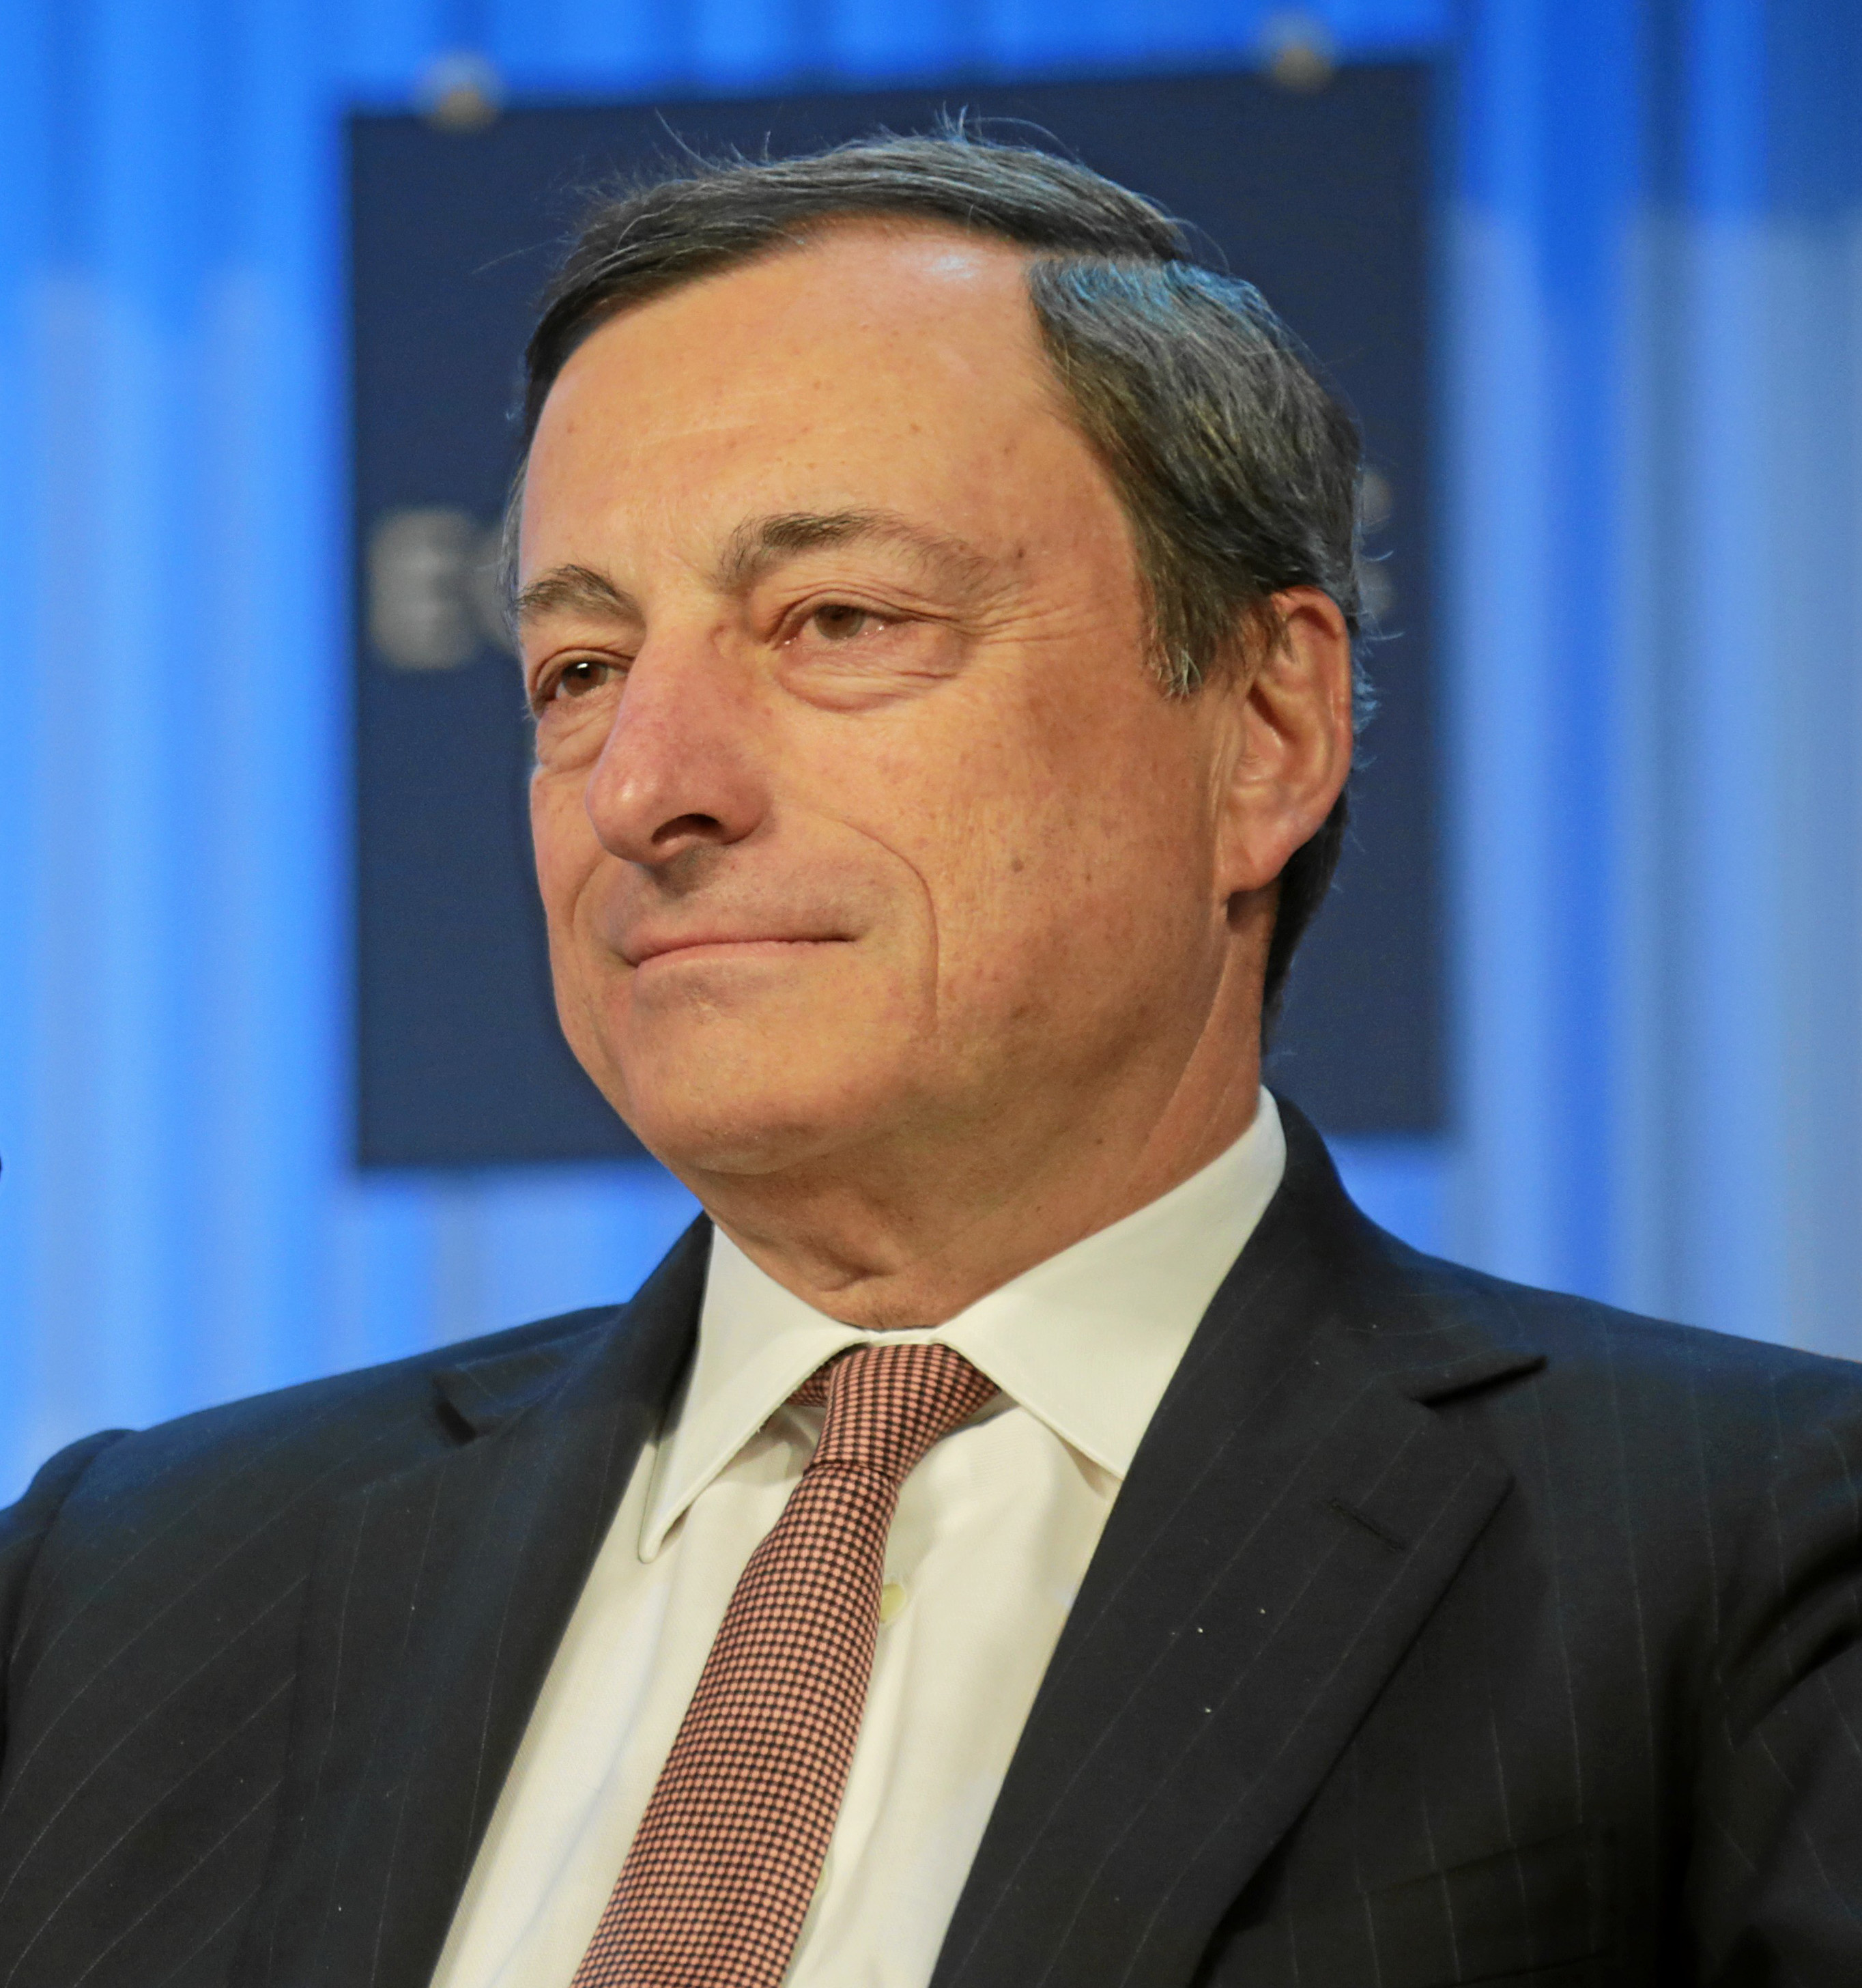 Mario Draghi, President of the ECB